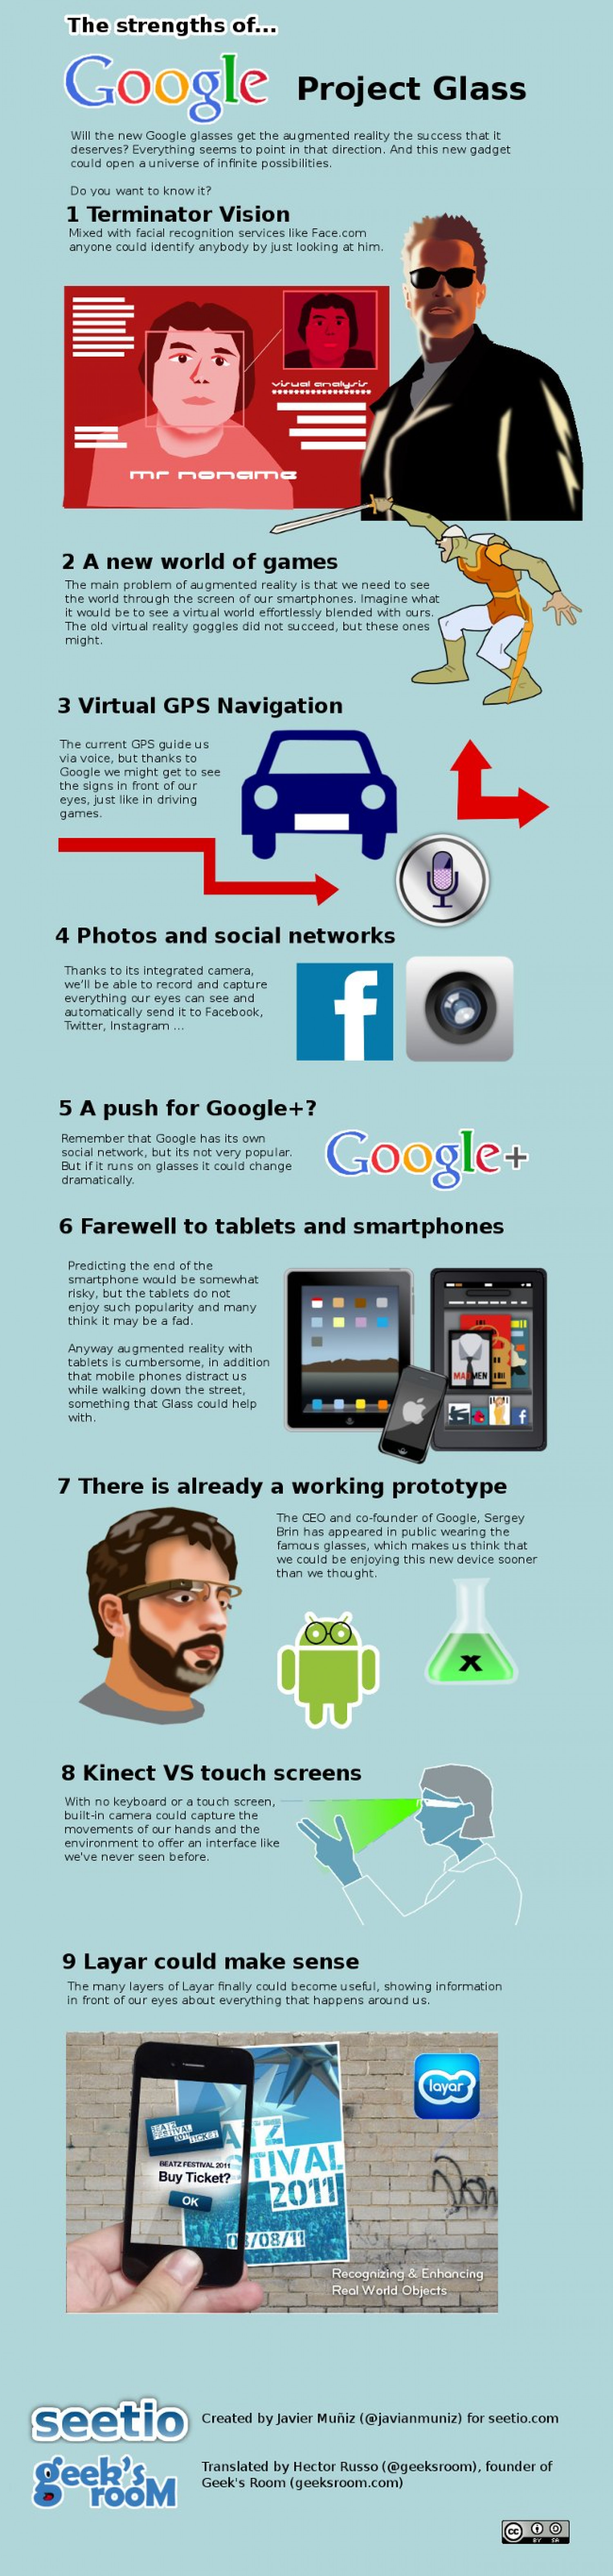 Google Project Glass Infographic